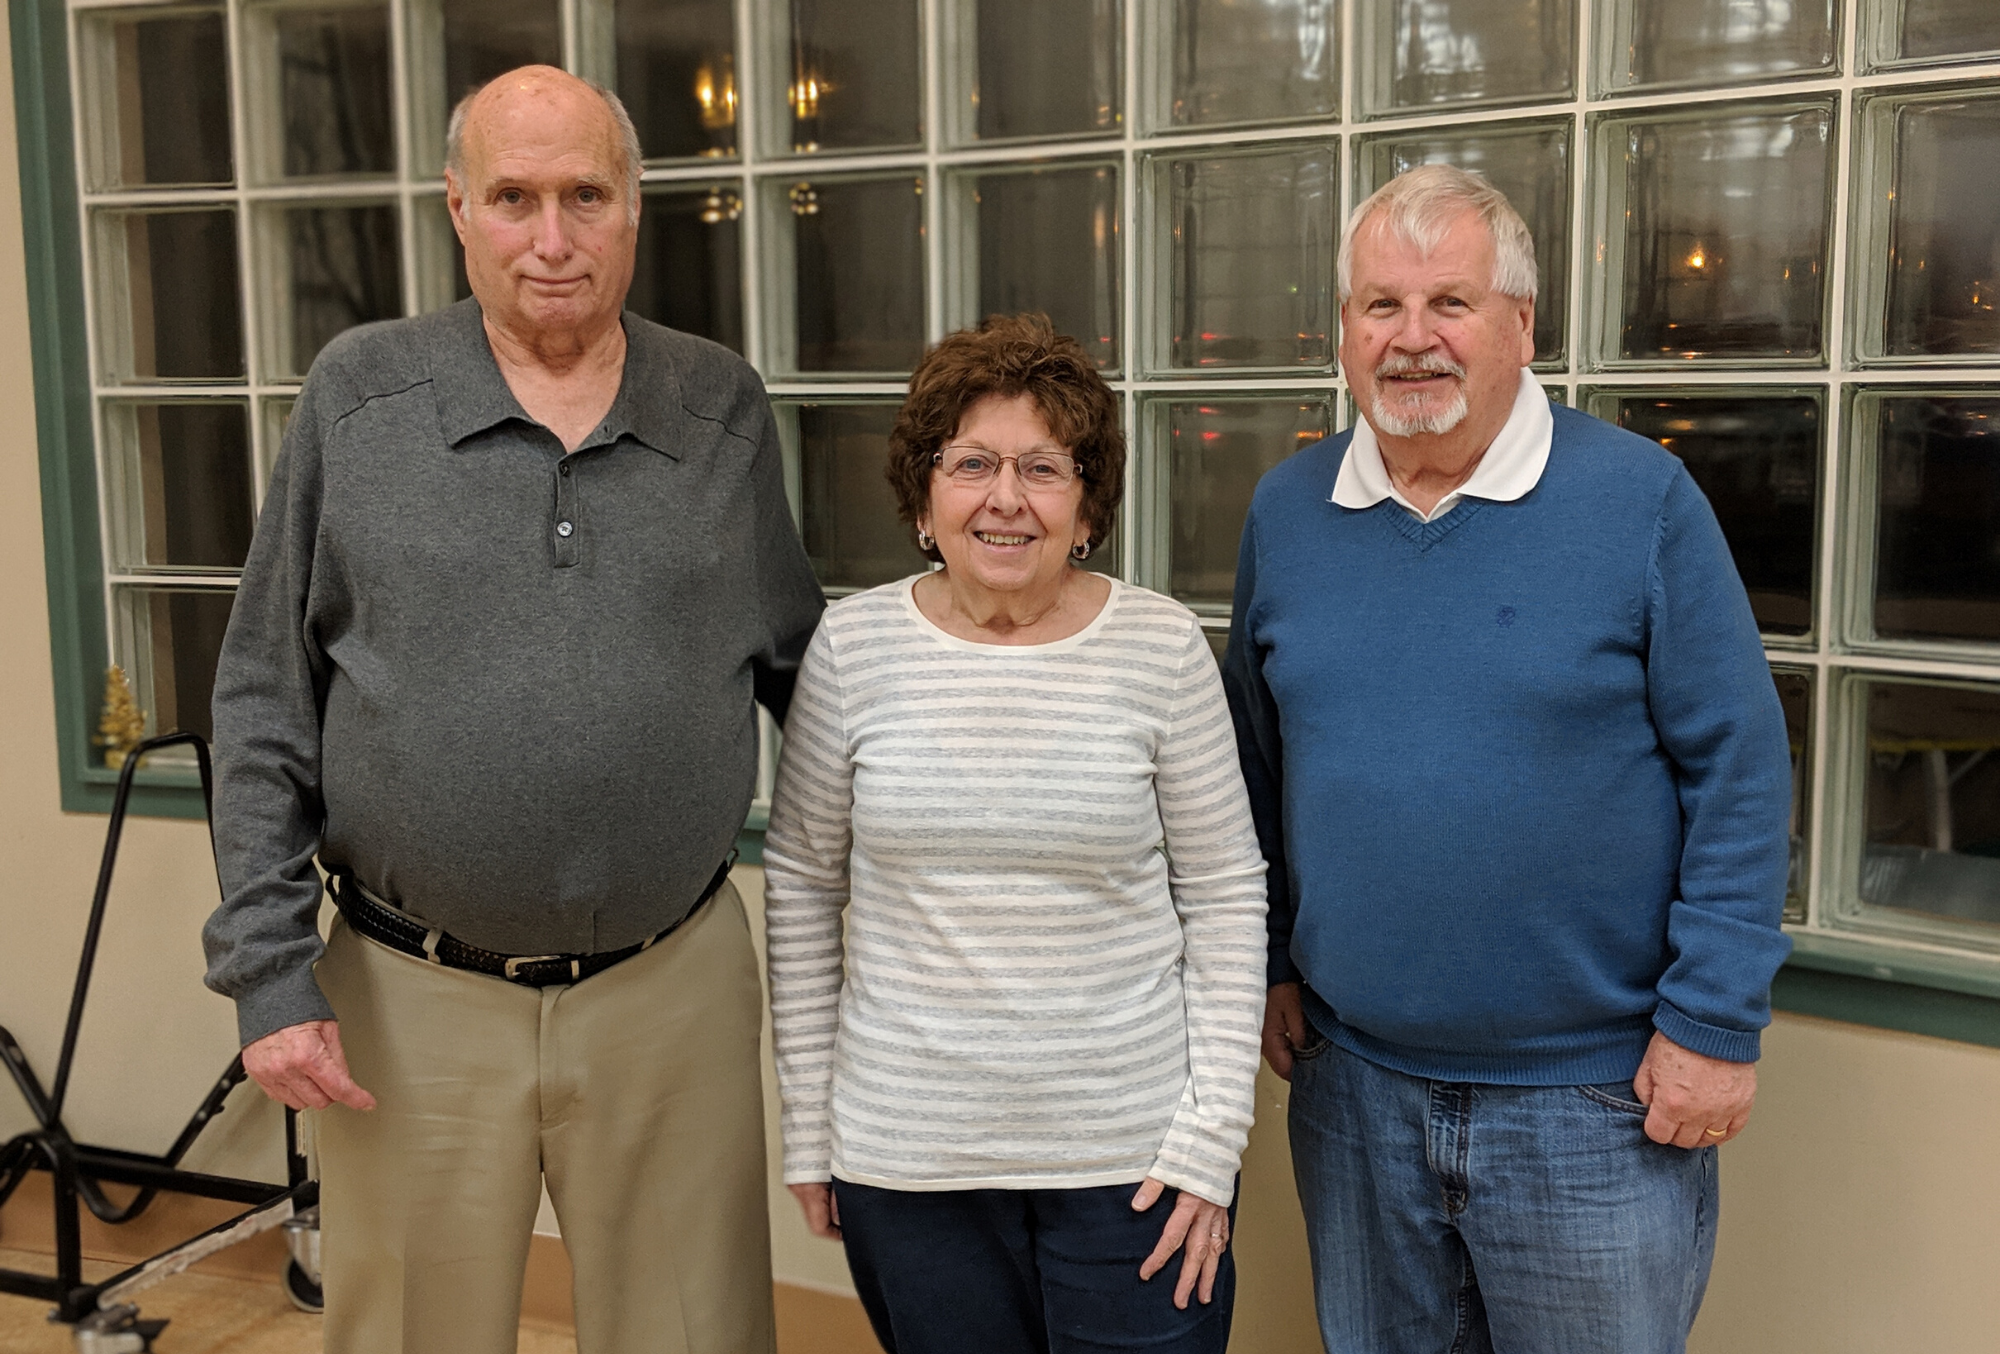 Avon Lake Democrats Leadership 2019